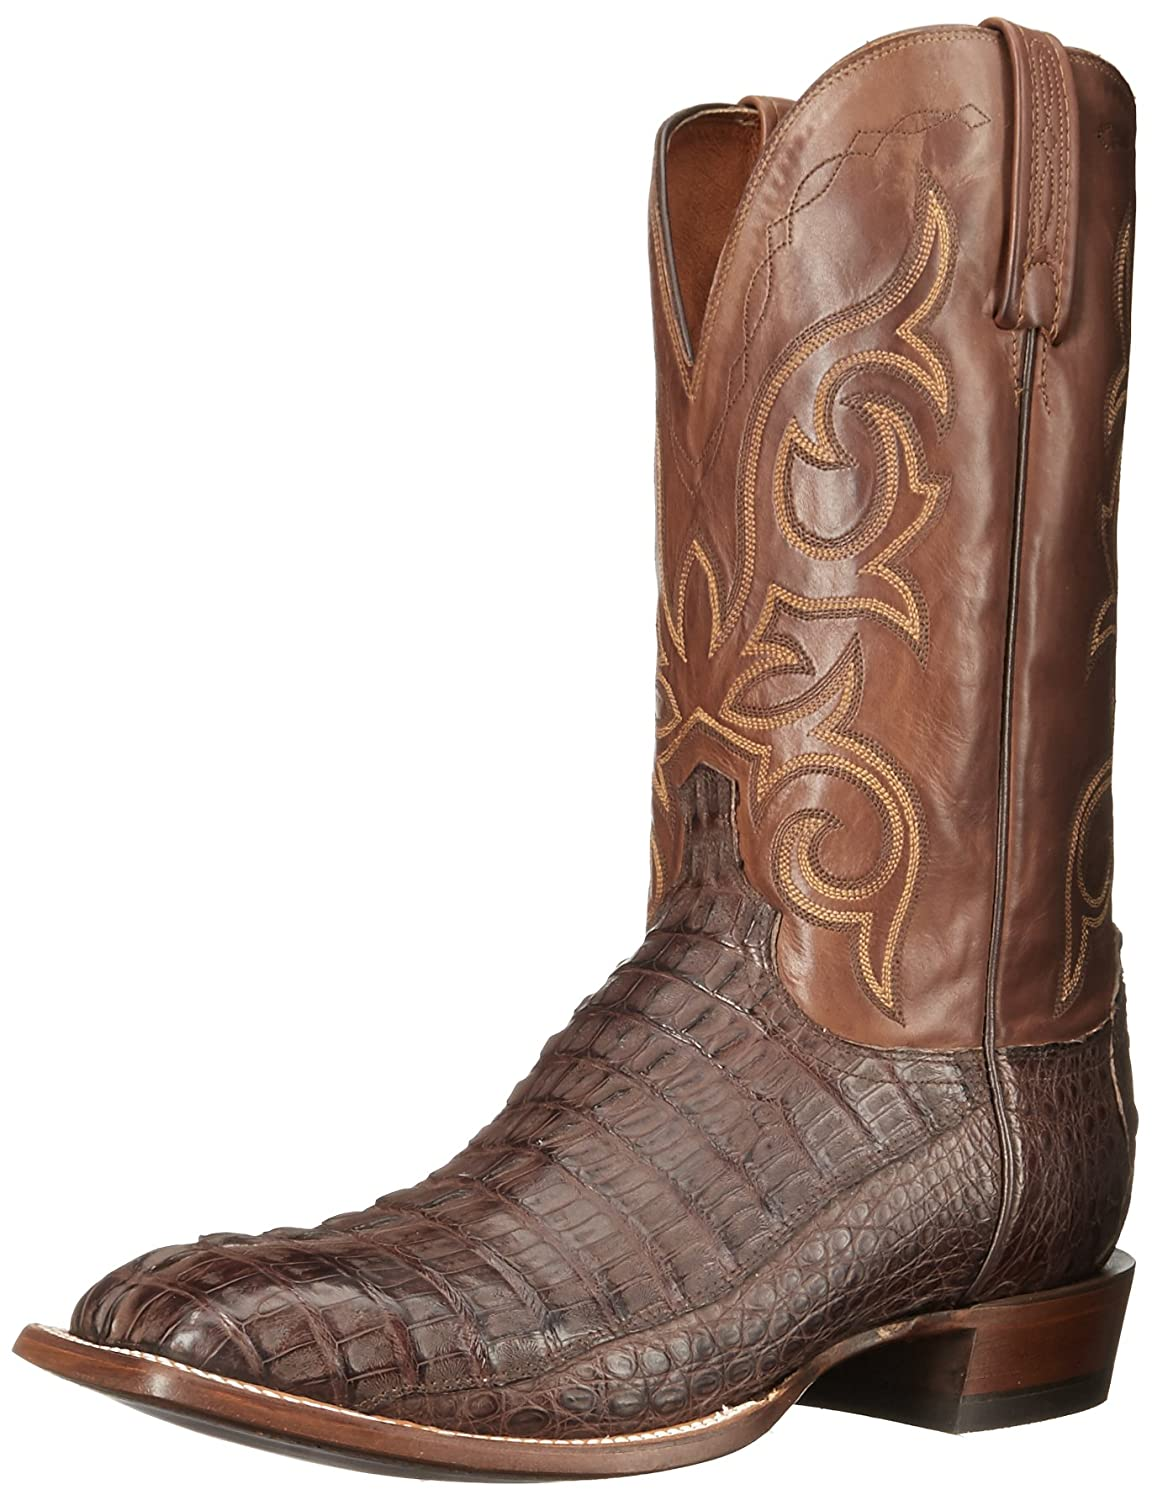 Barrel Brown Tan Lucchese Bootmaker Men's Haan Western